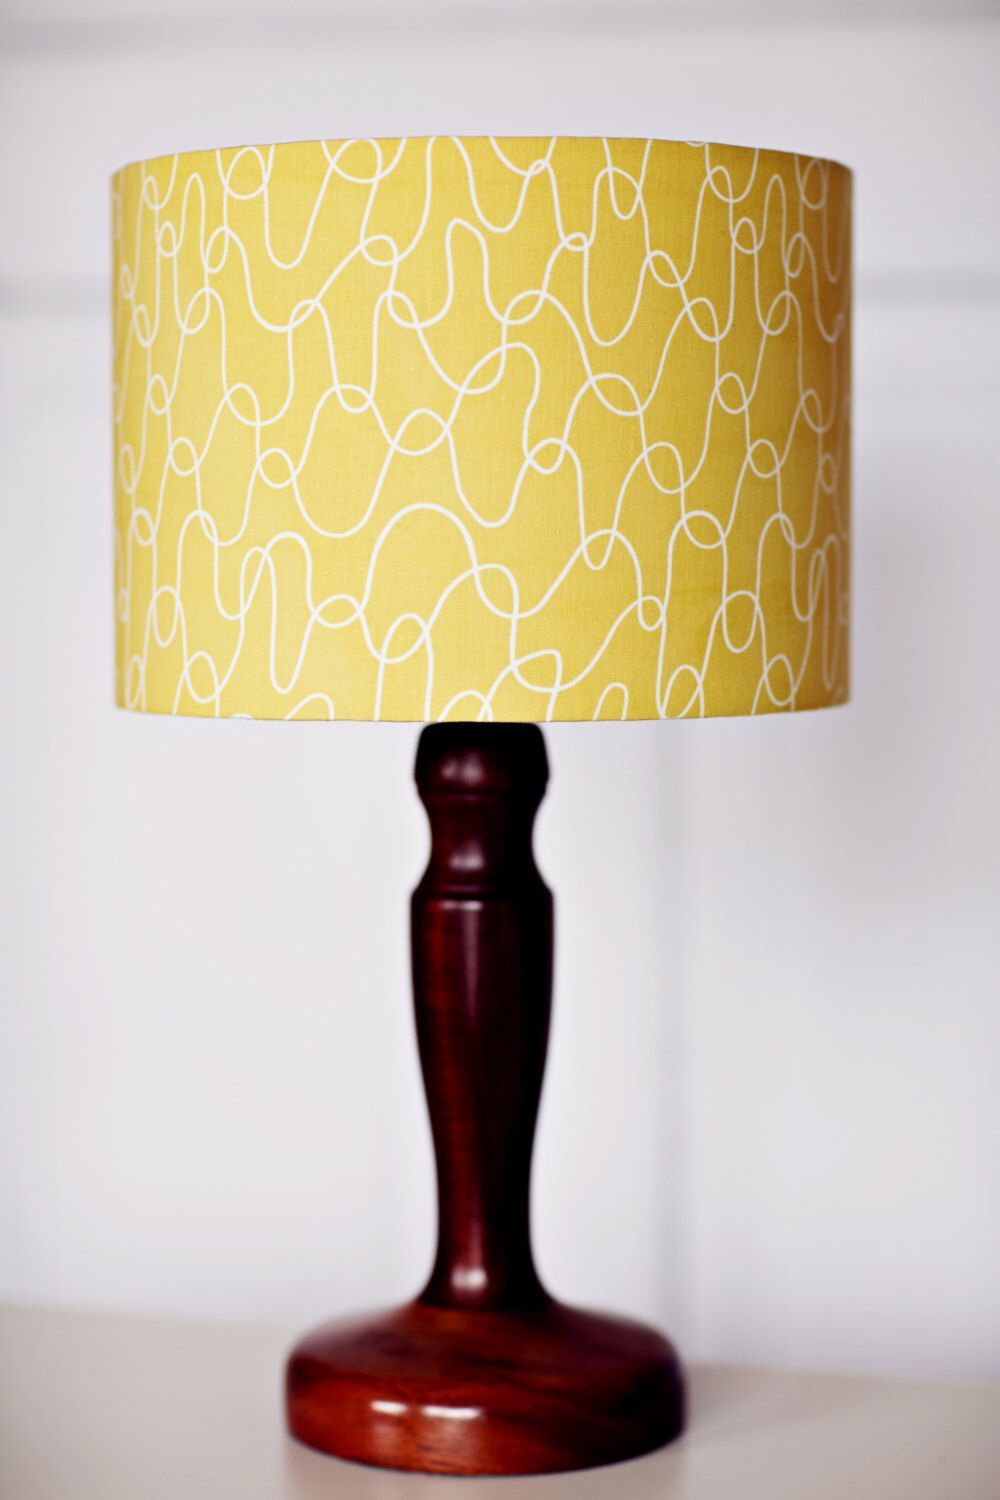 Lampshade scandinavian lamp yellow lamp shade mustard home decor lampshade scandinavian lamp yellow lamp shade mustard home decor retro decor aloadofball Images